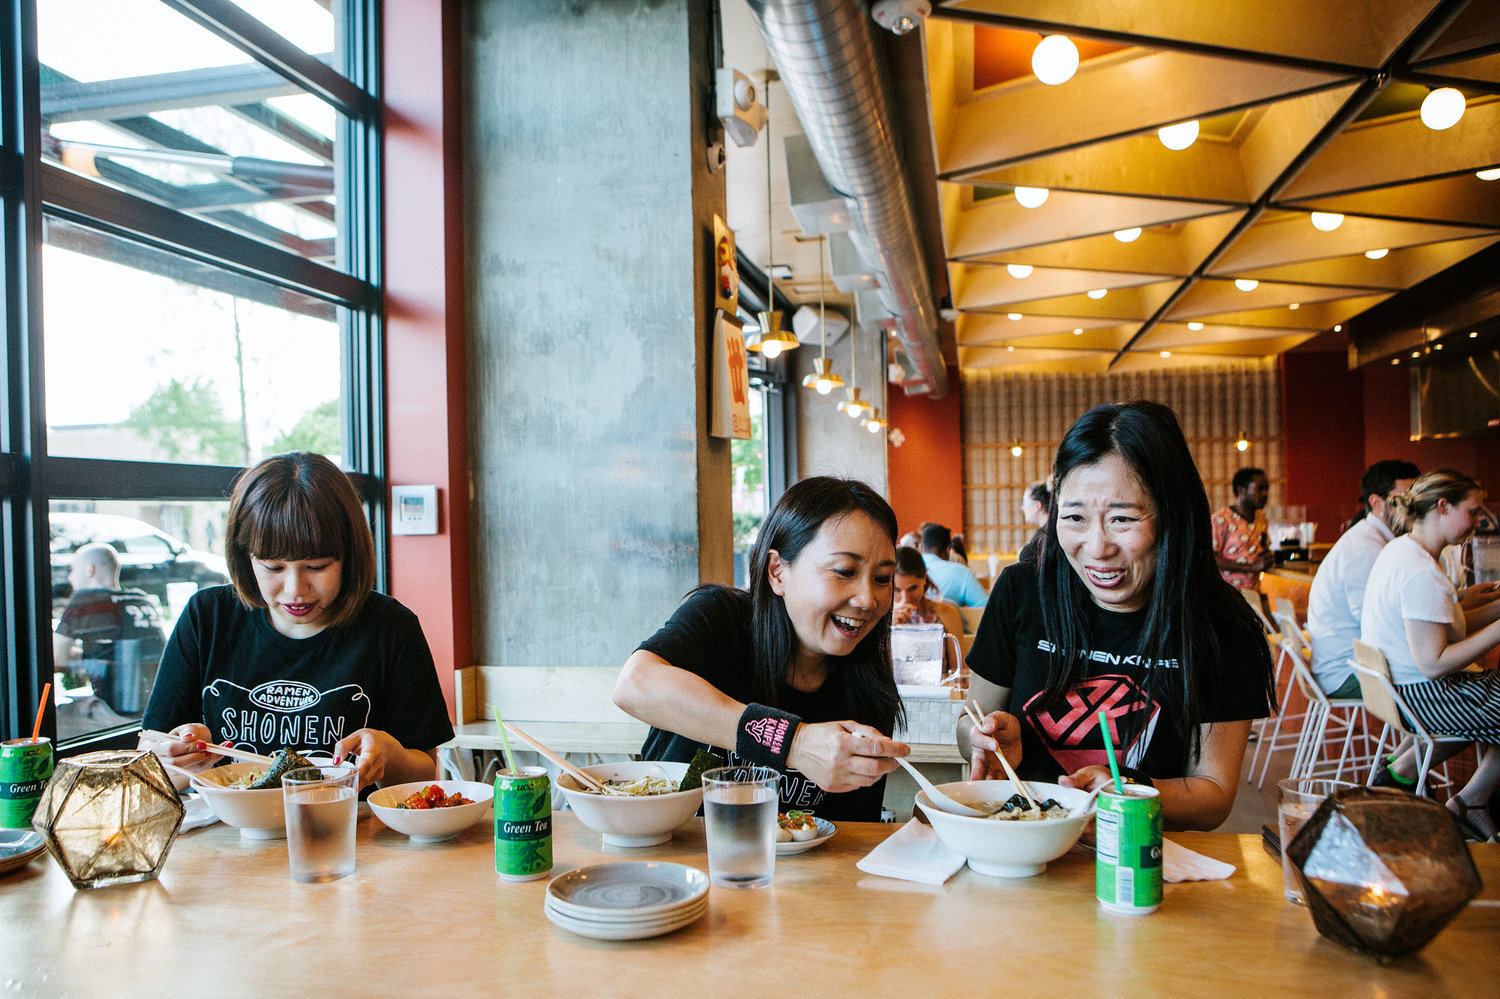 """(Left to right) Risa, Naoko and Atsuko of the band Shonen Knife eat ramen at Haikan in Washington, D.C., before playing a show. D.C. was one of their stops on a self-titled """"Ramen Adventure Tour"""" of the U.S. By night, they play gigs. By day, they sample ramen in cities across the country."""